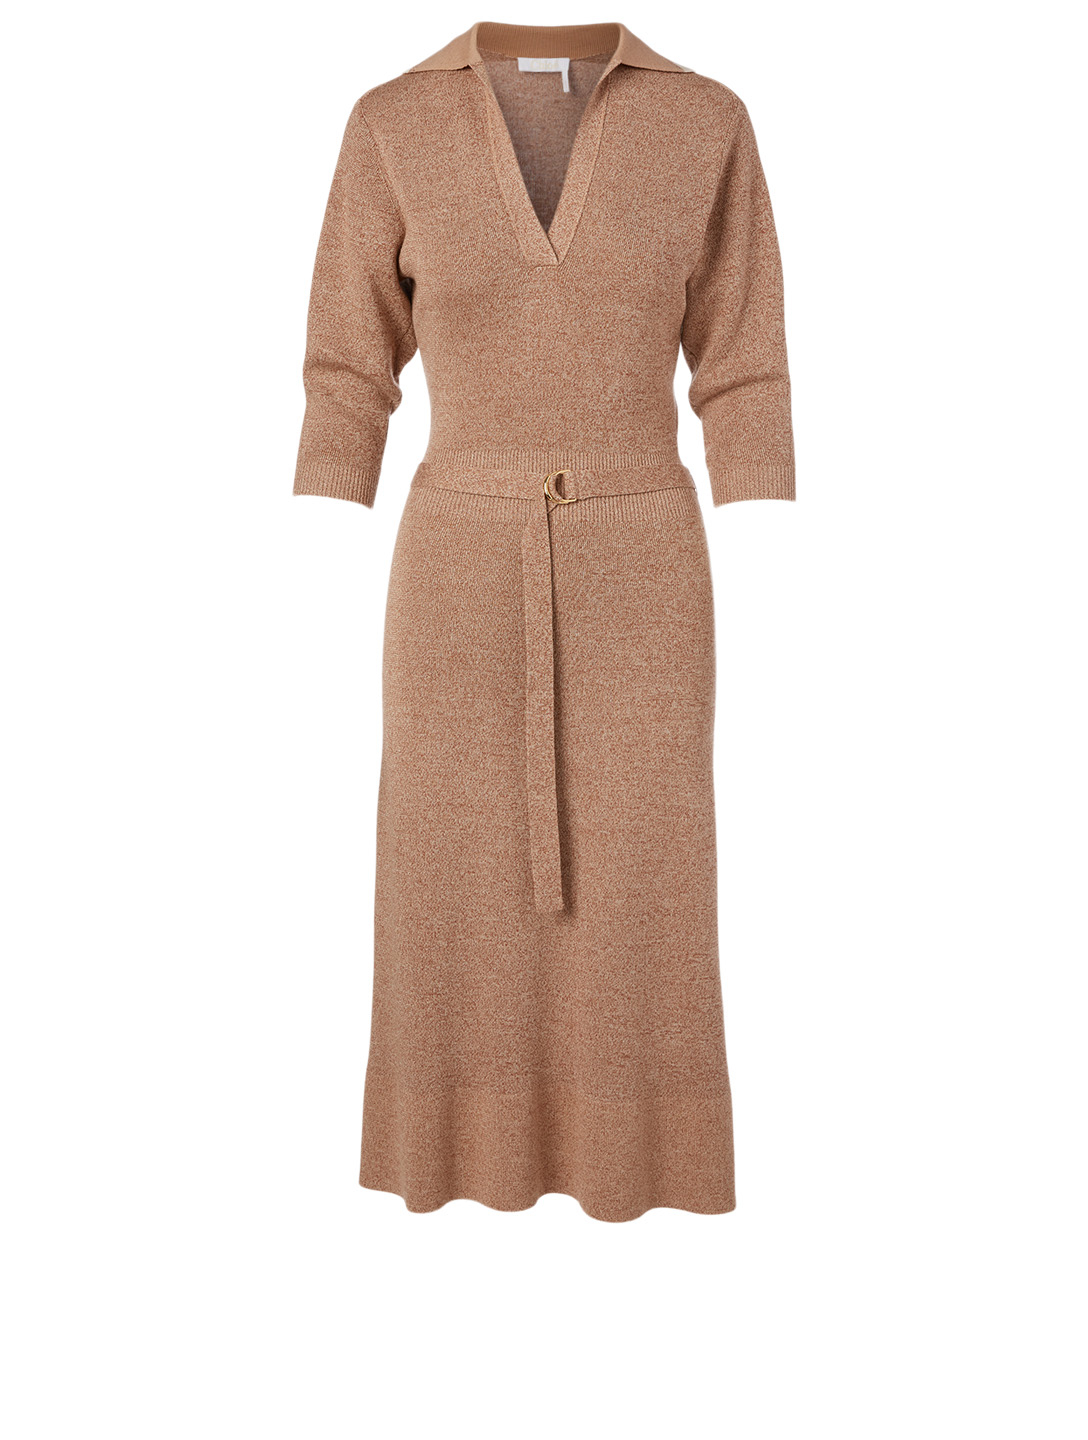 CHLOÉ Wool And Silk Polo Midi Dress Women's Beige